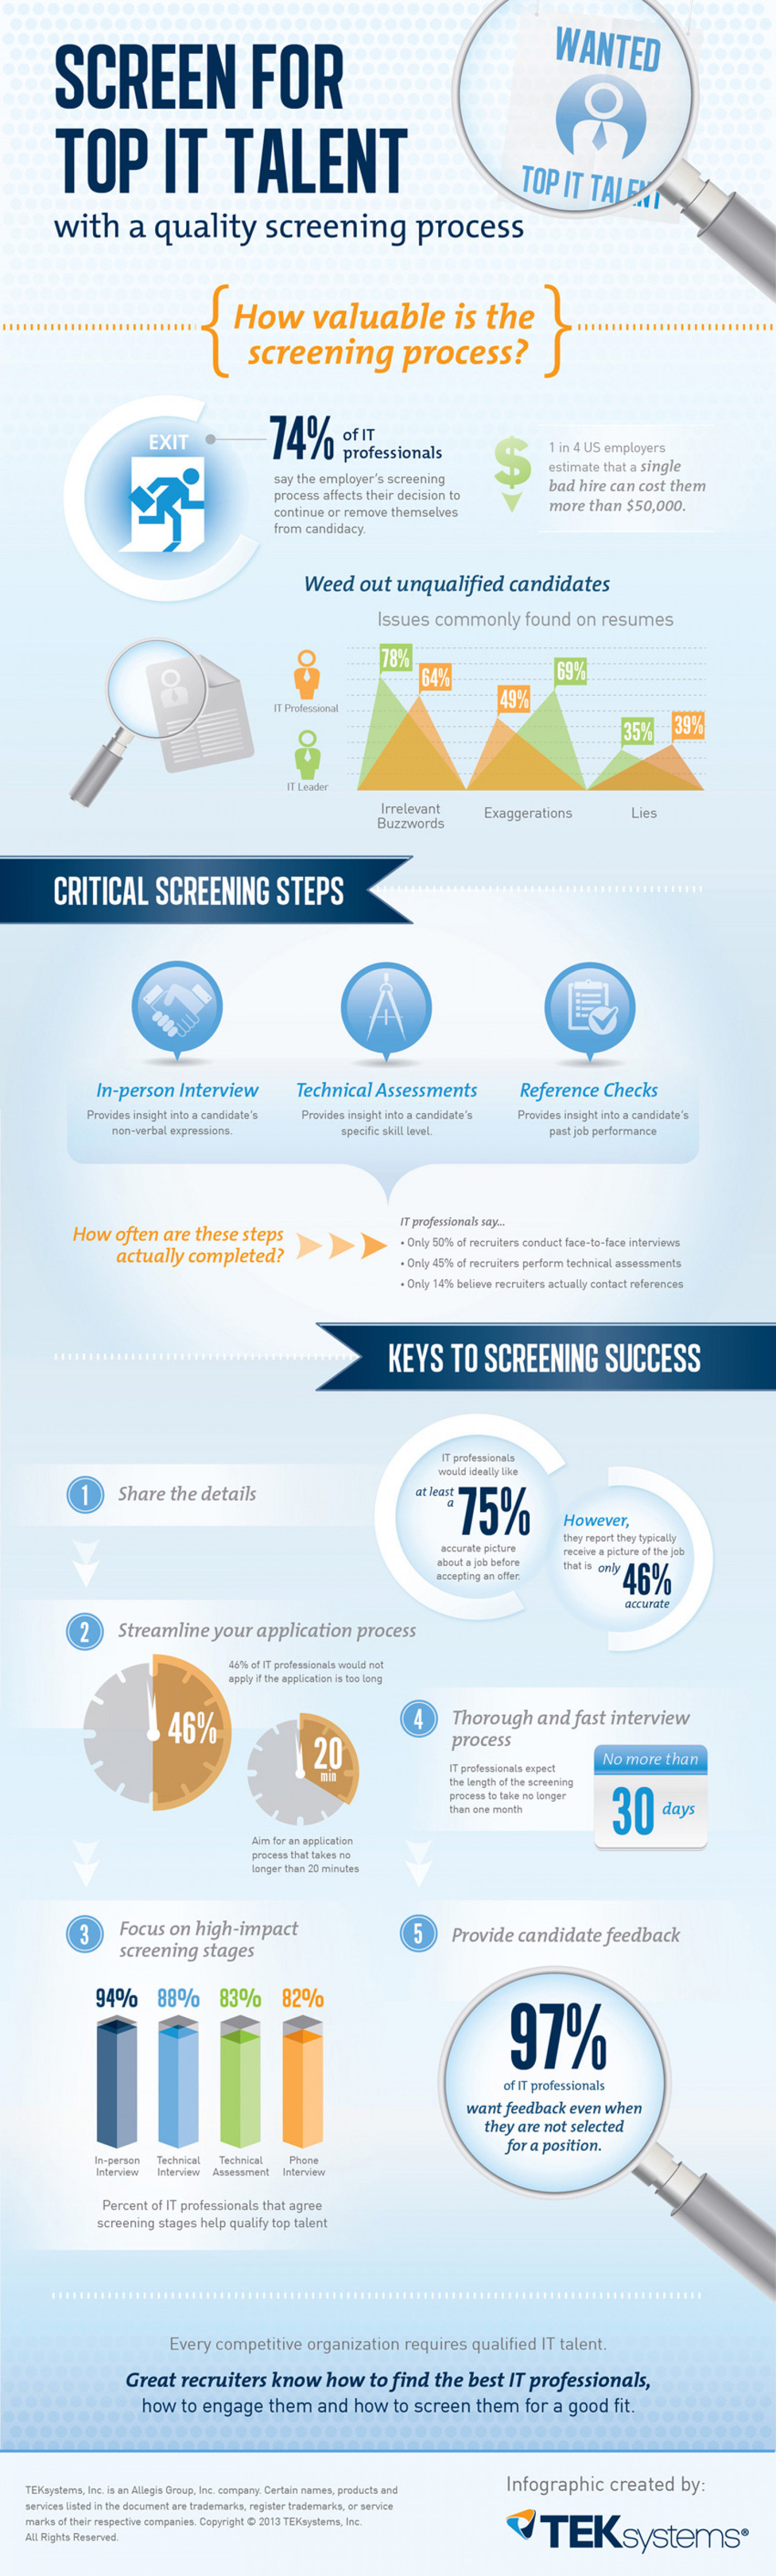 Screen for Top IT Talent Infographic